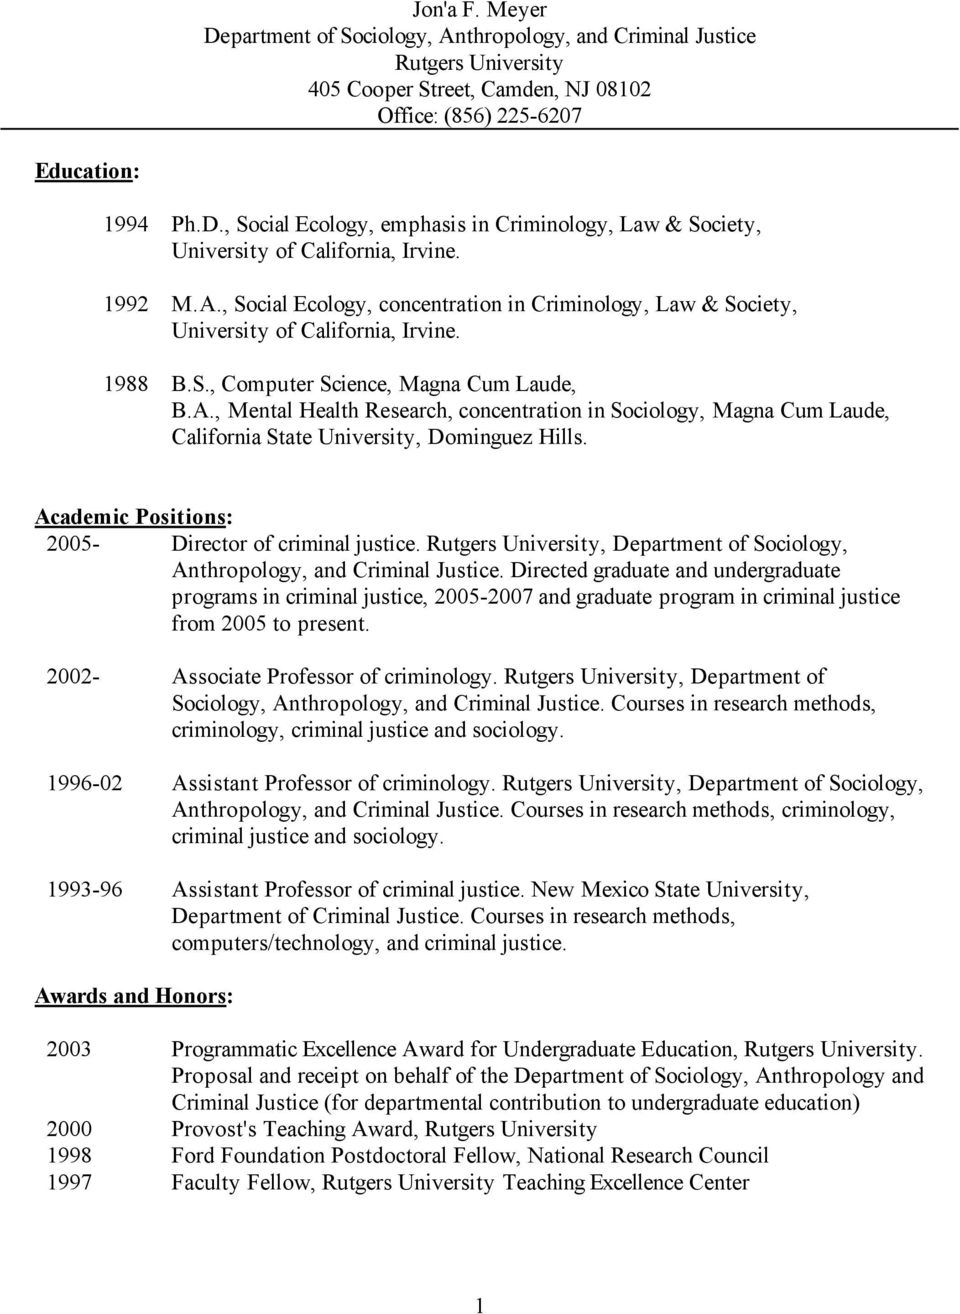 Academic Positions: 2005- Director of criminal justice. Rutgers University, Department of Sociology, Anthropology, and Criminal Justice.